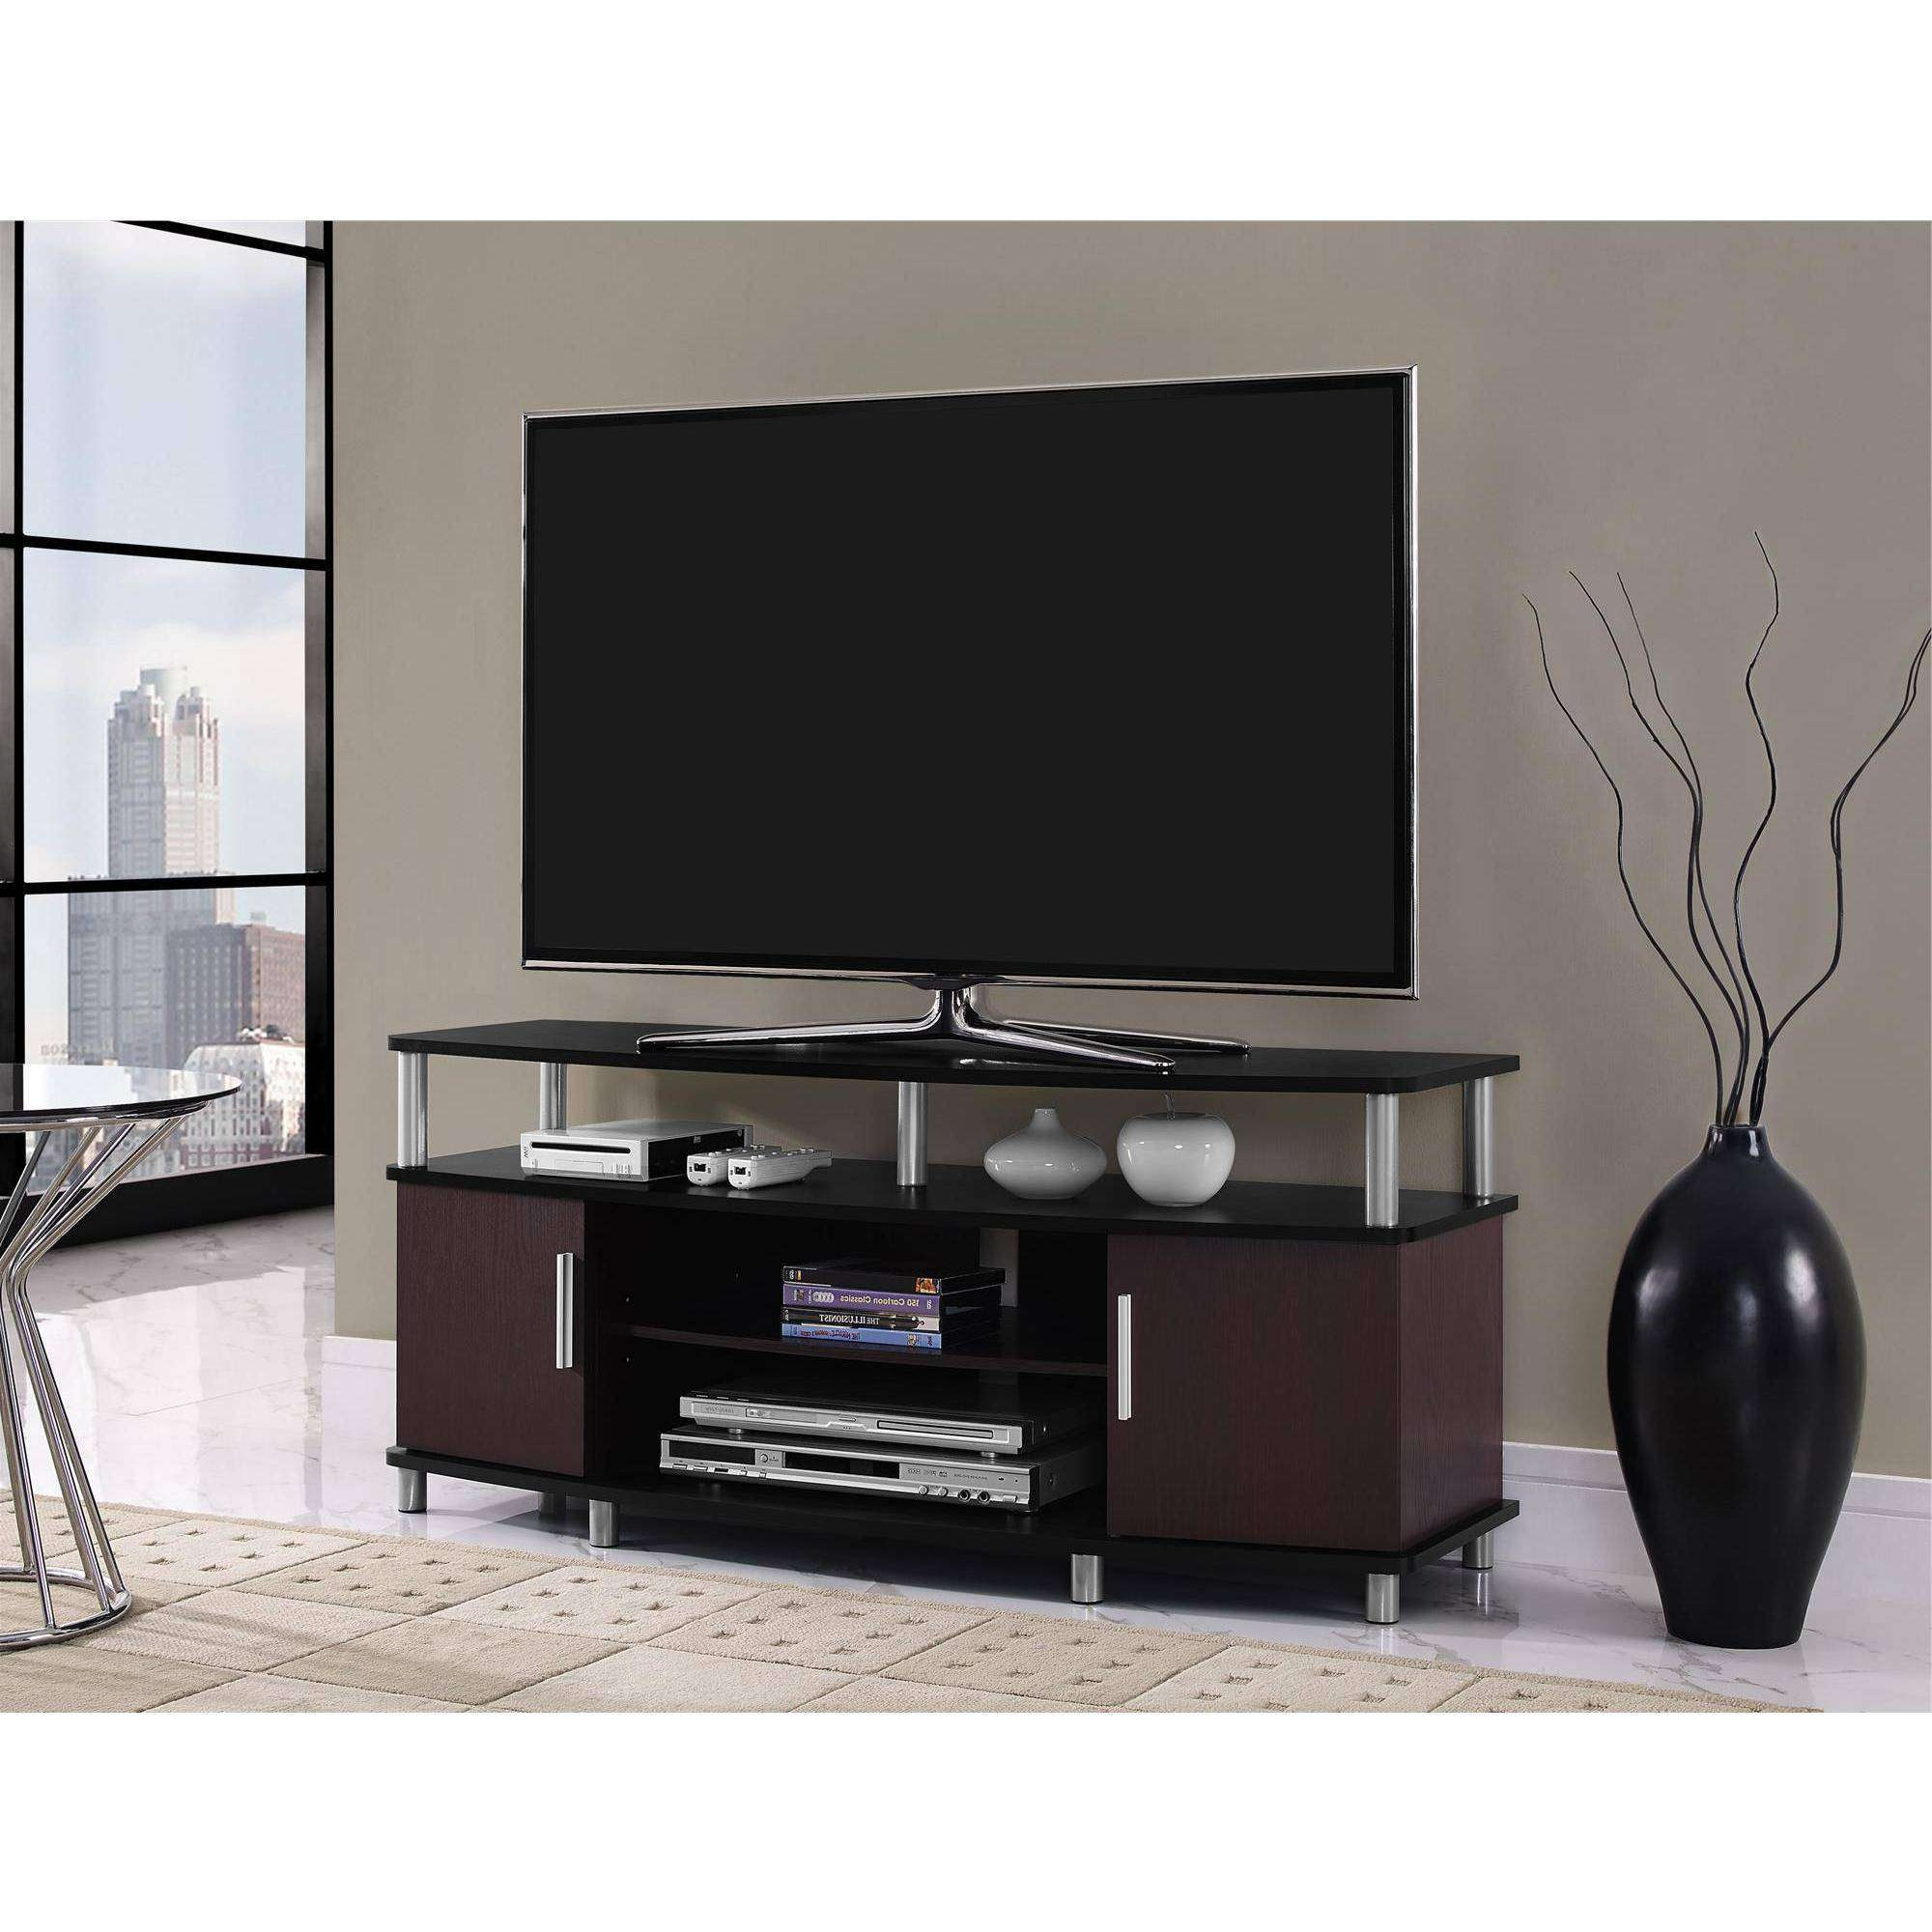 Luxury 50 Inch Tv Stands 62 About Remodel Home Decorating Ideas Within Luxury Tv Stands (View 15 of 15)